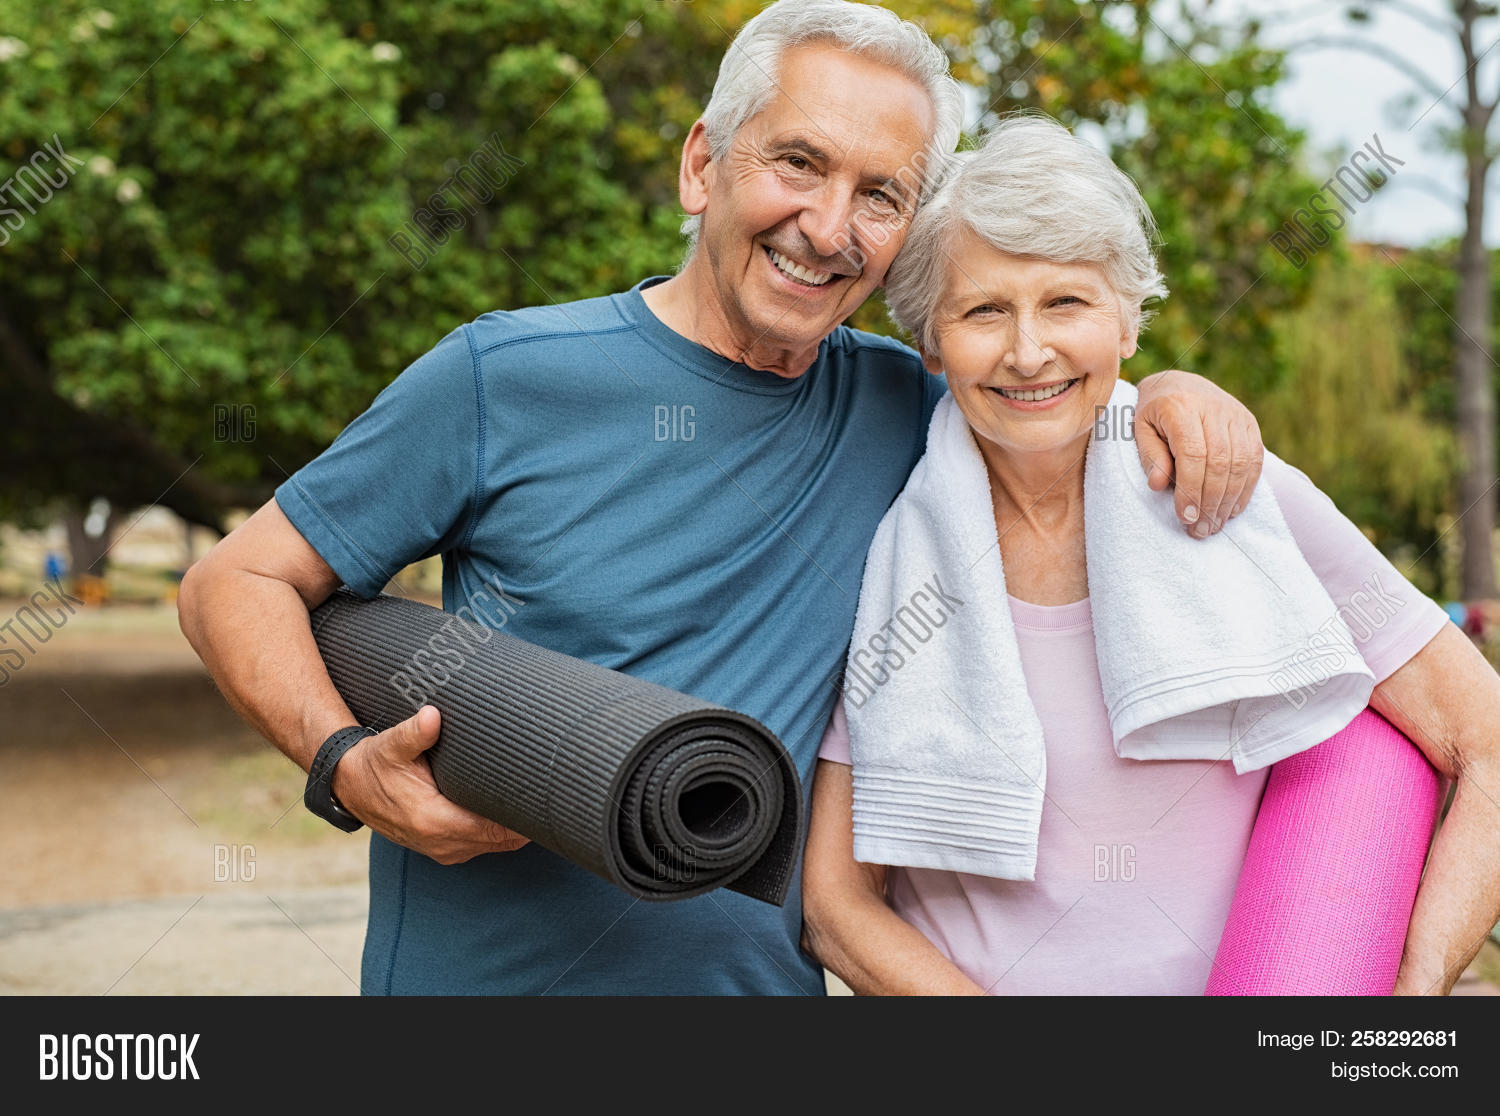 70s,80s,active,activity,aged,body care,bodycare,care,caucasian,cheerful,couple,elderly,embrace,exercise,family,fit,fitness,gymnastics,happiness,happy,health,healthy,holding,hugging,leisure,lifestyle,looking,looking at camera,love,man,mature,nature,old,outdoor,outdoors,park,people,portrait,postural,retired,retirement,senior,seniors,smile,sport,standing,training,woman,workout,yoga